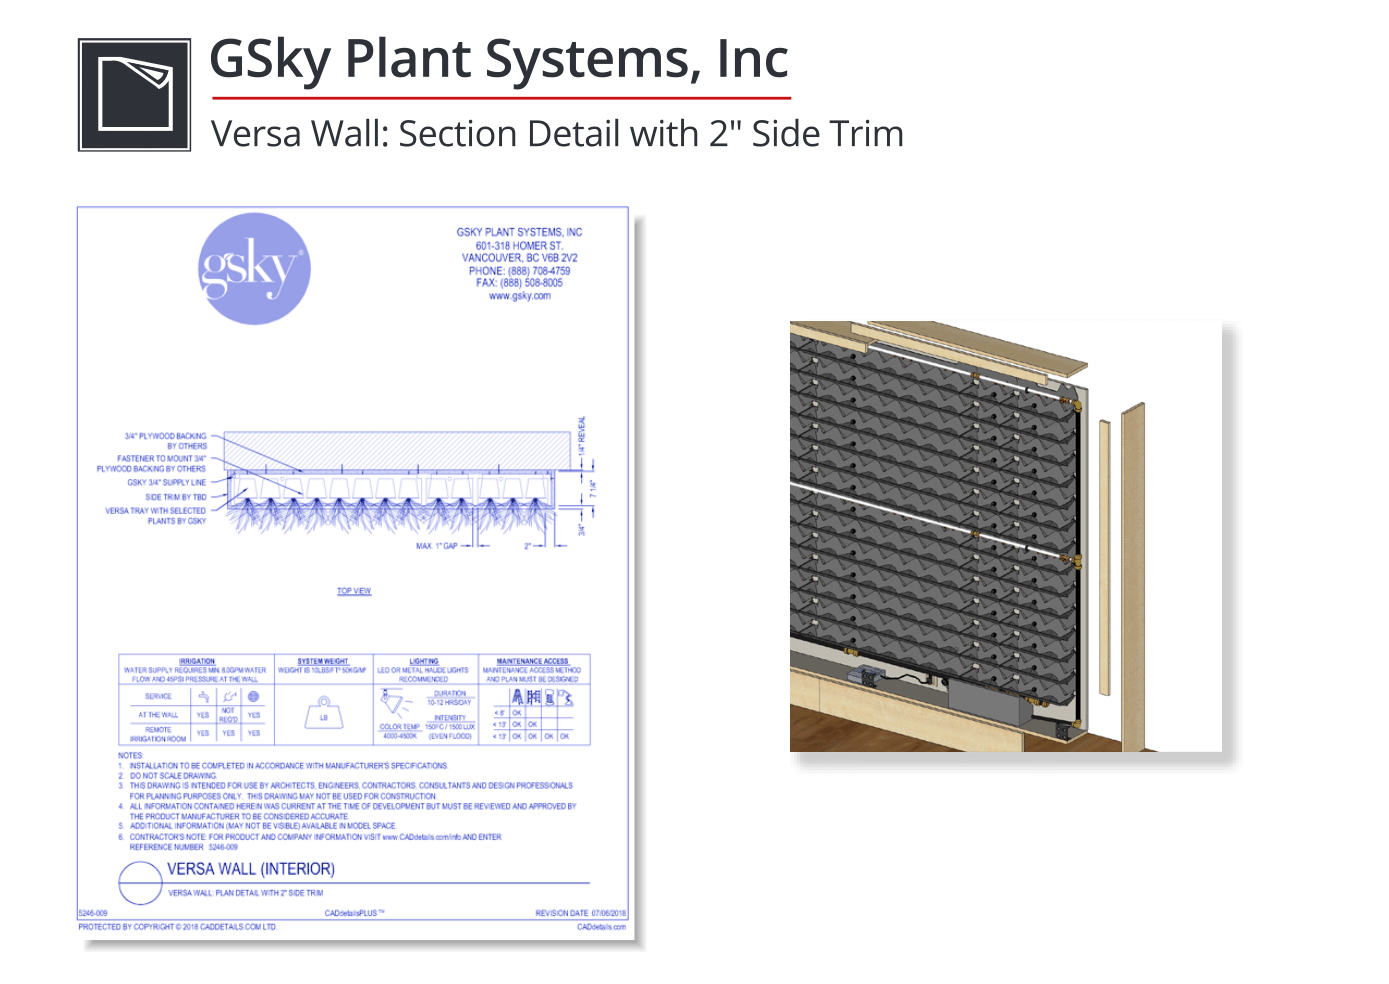 GSky-Plant-Systems-Inc-Versa-Wall-2inch-Side-Trim-CADdrawing.png